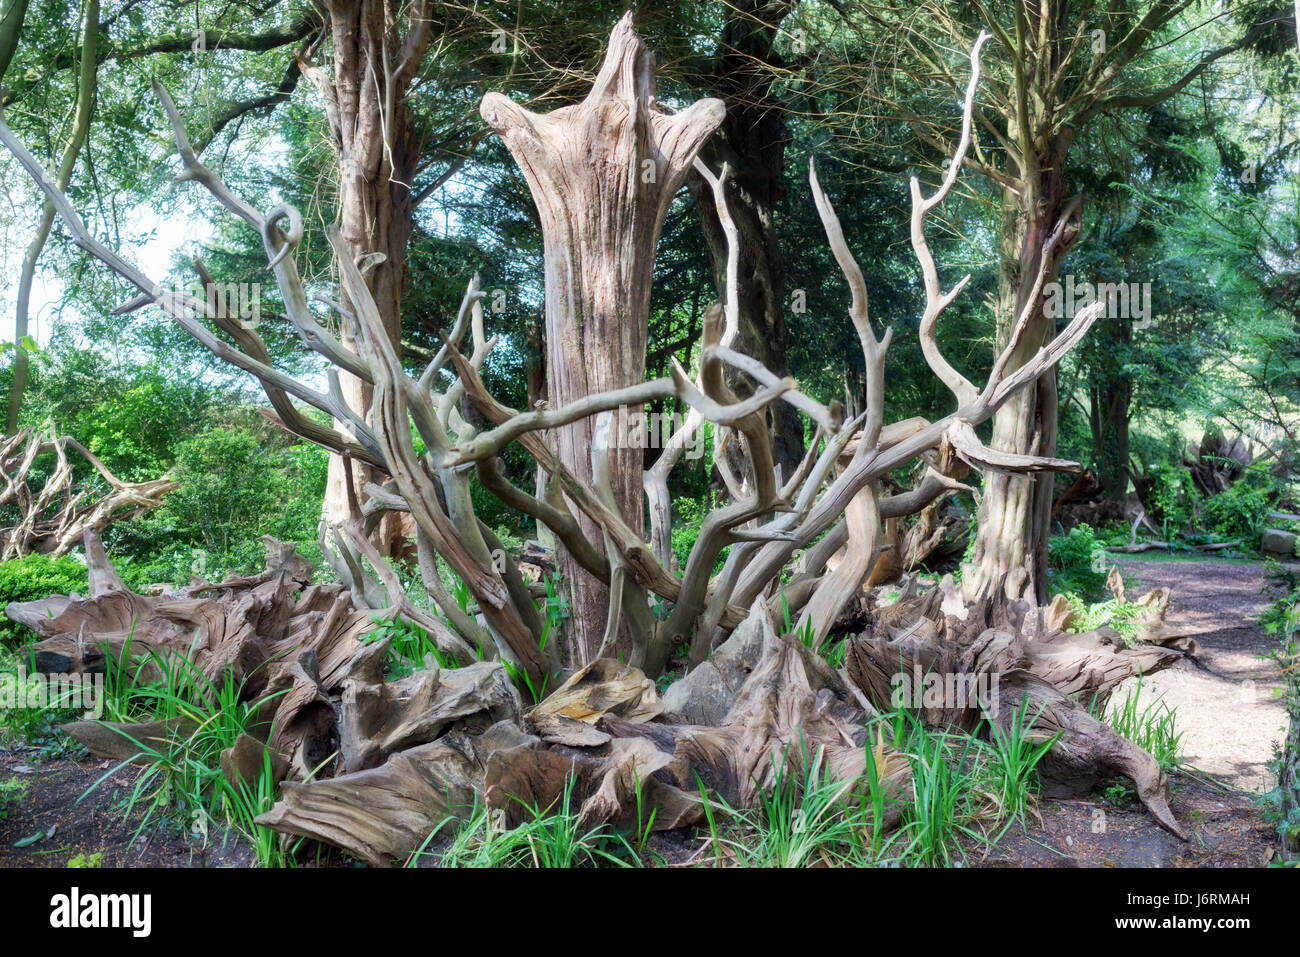 Enchanting tree stumpery in a formal English garden - Stock Image